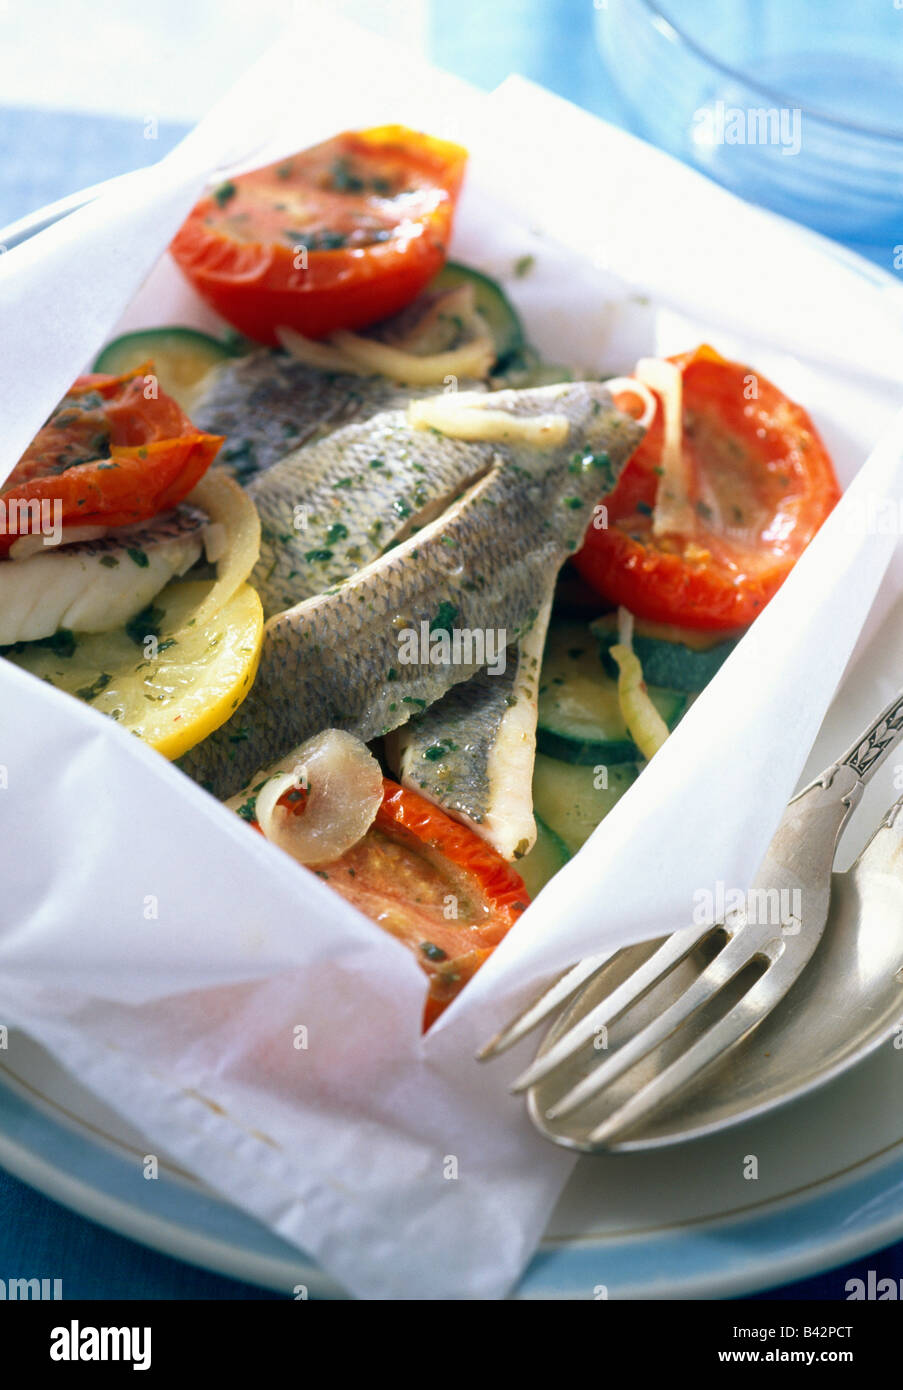 Sea bream fillets with preserved tomatoes and courgettes in papillote - Stock Image